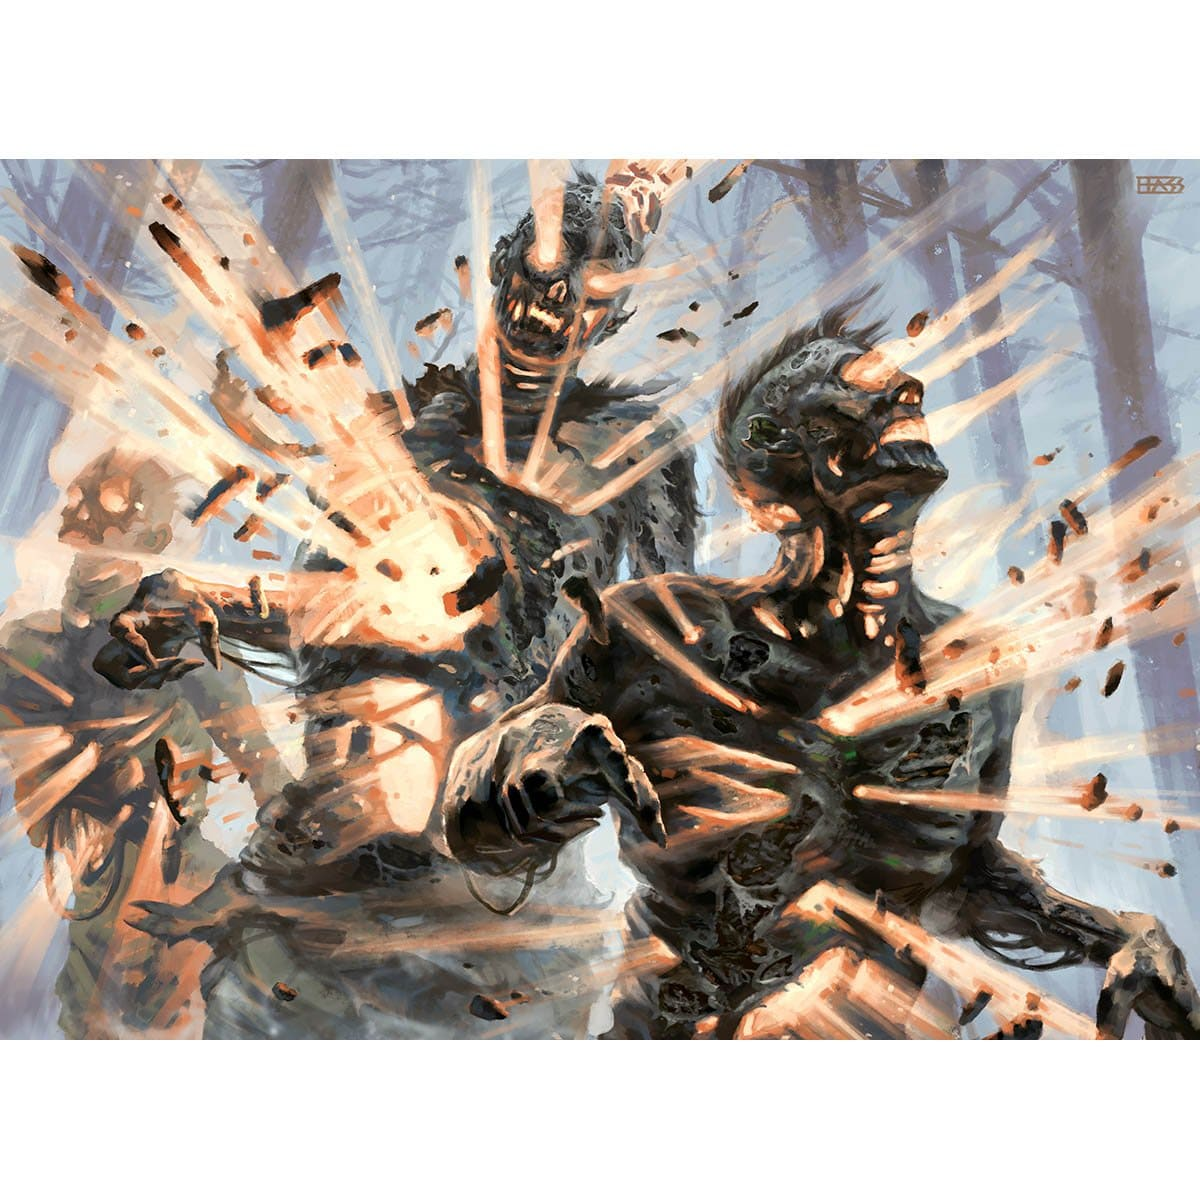 Wave of Reckoning Print - Print - Original Magic Art - Accessories for Magic the Gathering and other card games